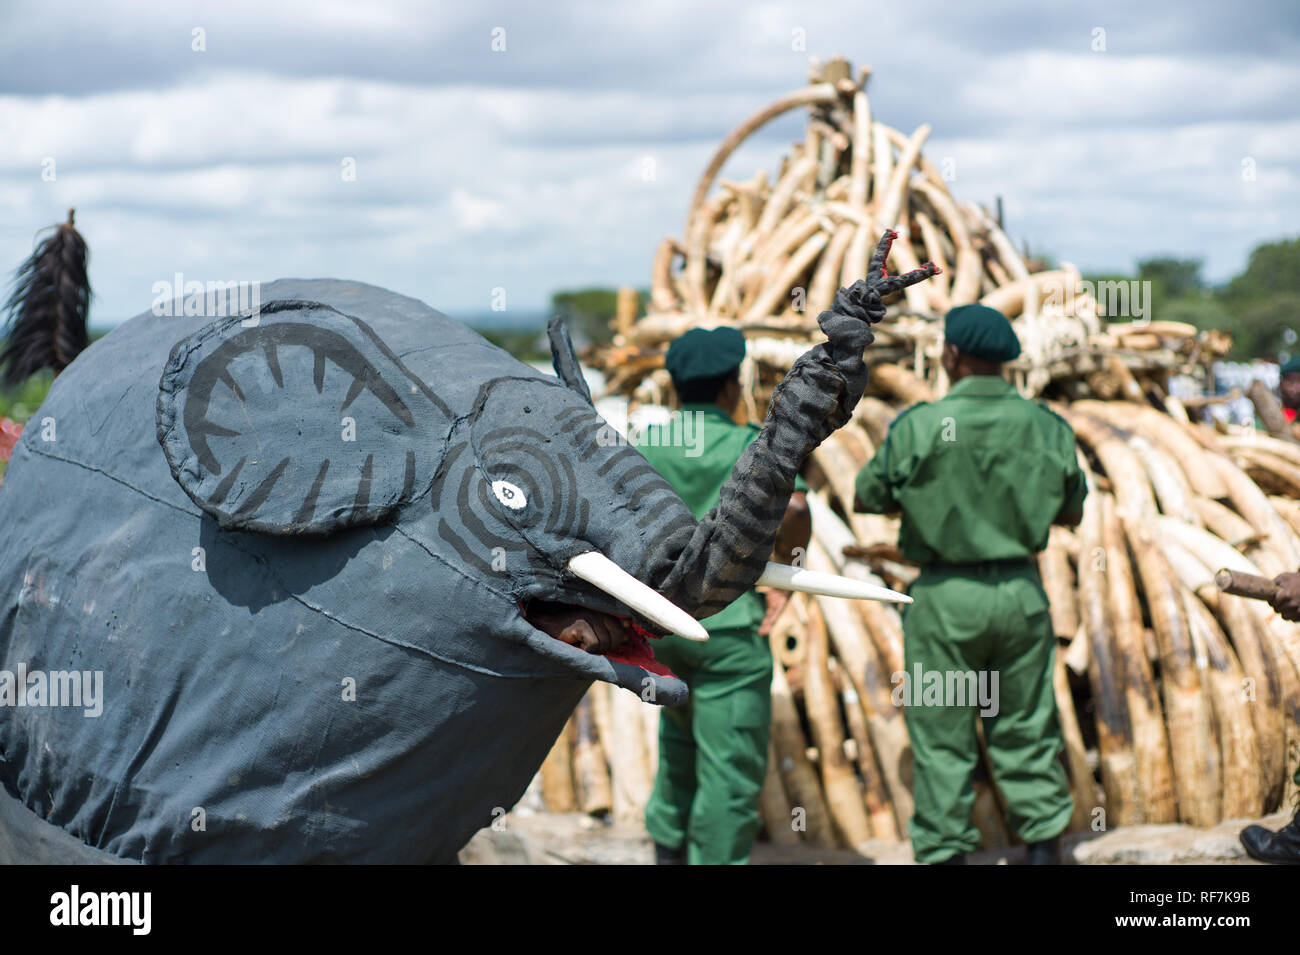 Traditional gule wamkulu tribal dancers perform a spiritual ceremony in front of confiscated elephant ivory scheduled to burn, Lilongwe Malawi - Stock Image